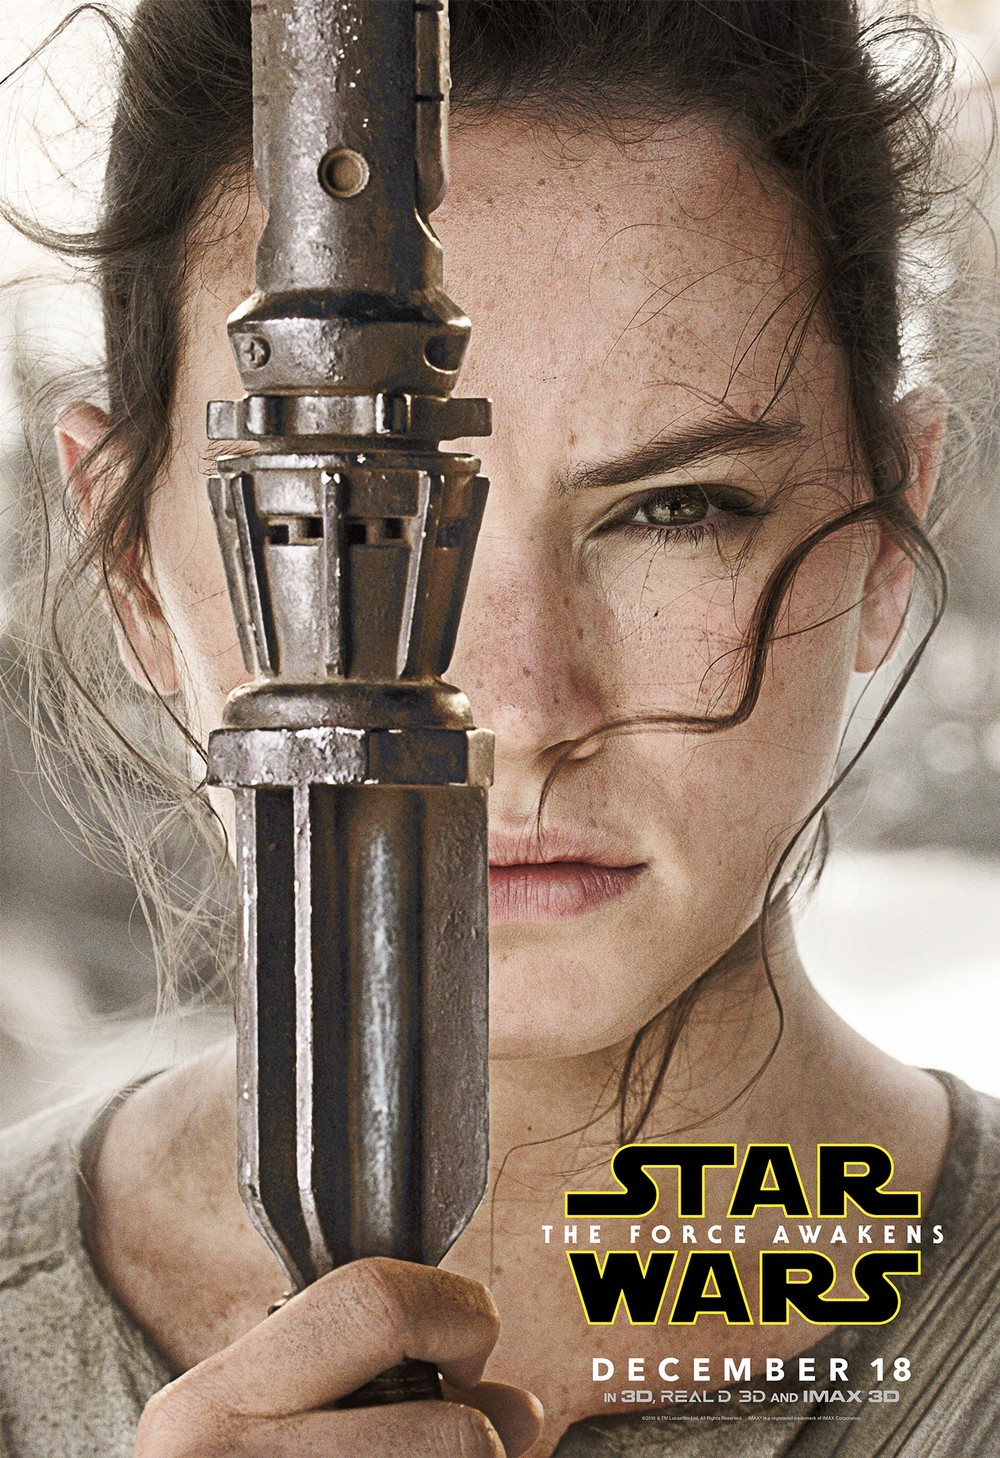 Star Wars: Episode VII - The Force Awakens: New Promo Images Leaked ...